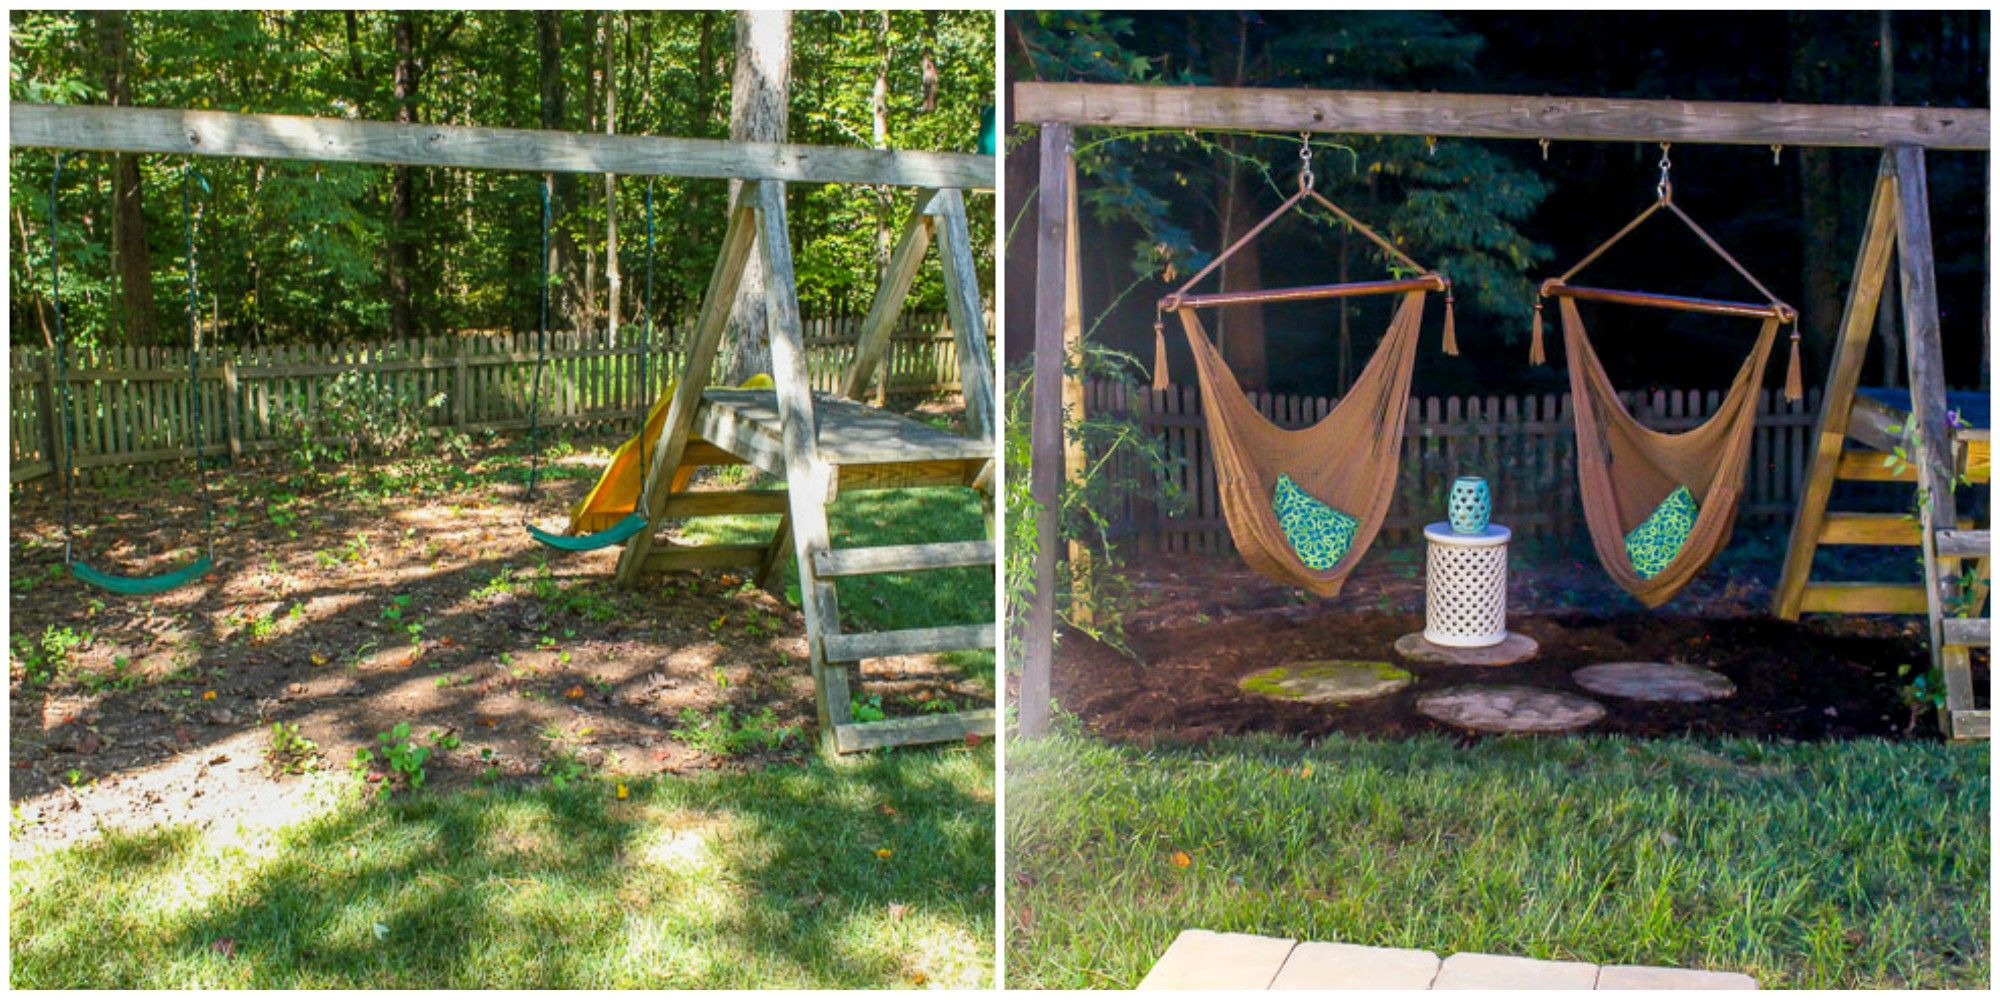 How To Make A Diy Grown Up Swing Set Transform Kid S